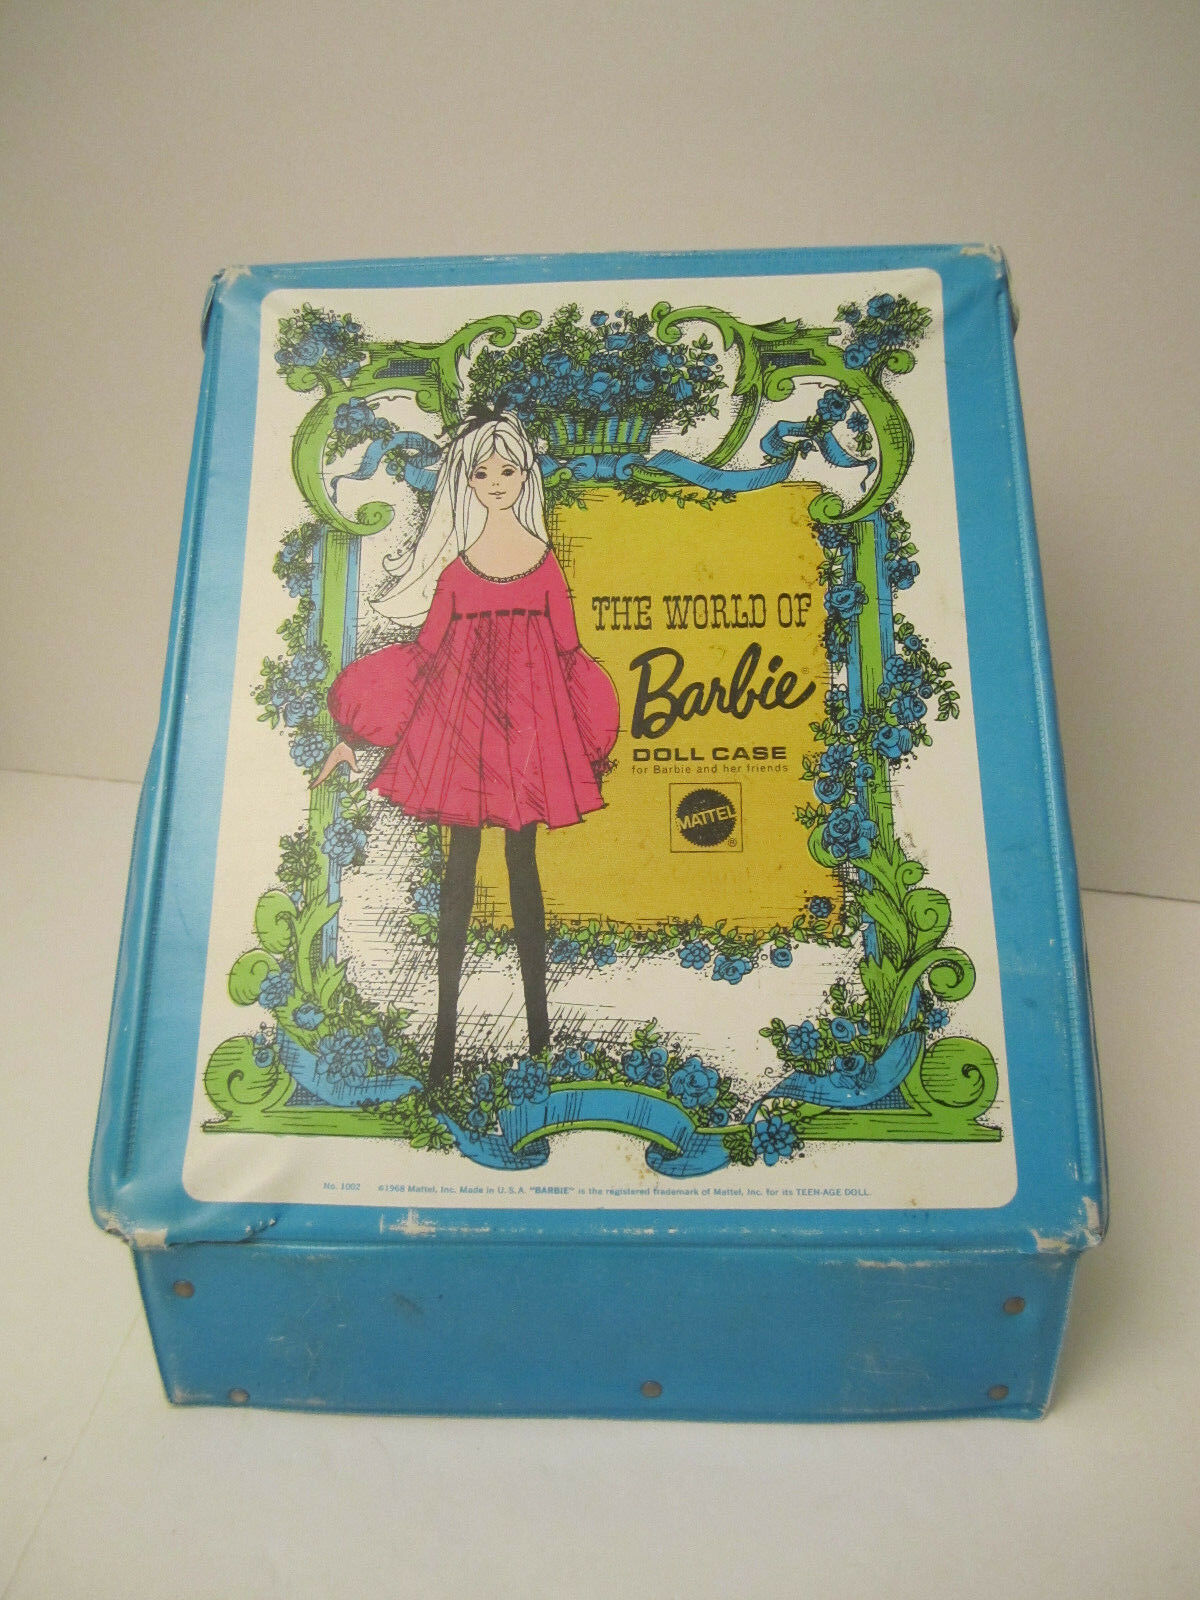 The World Of Barbie Doll Case 1002 Blue Vintage 1968 Doll Carrying Case image 3